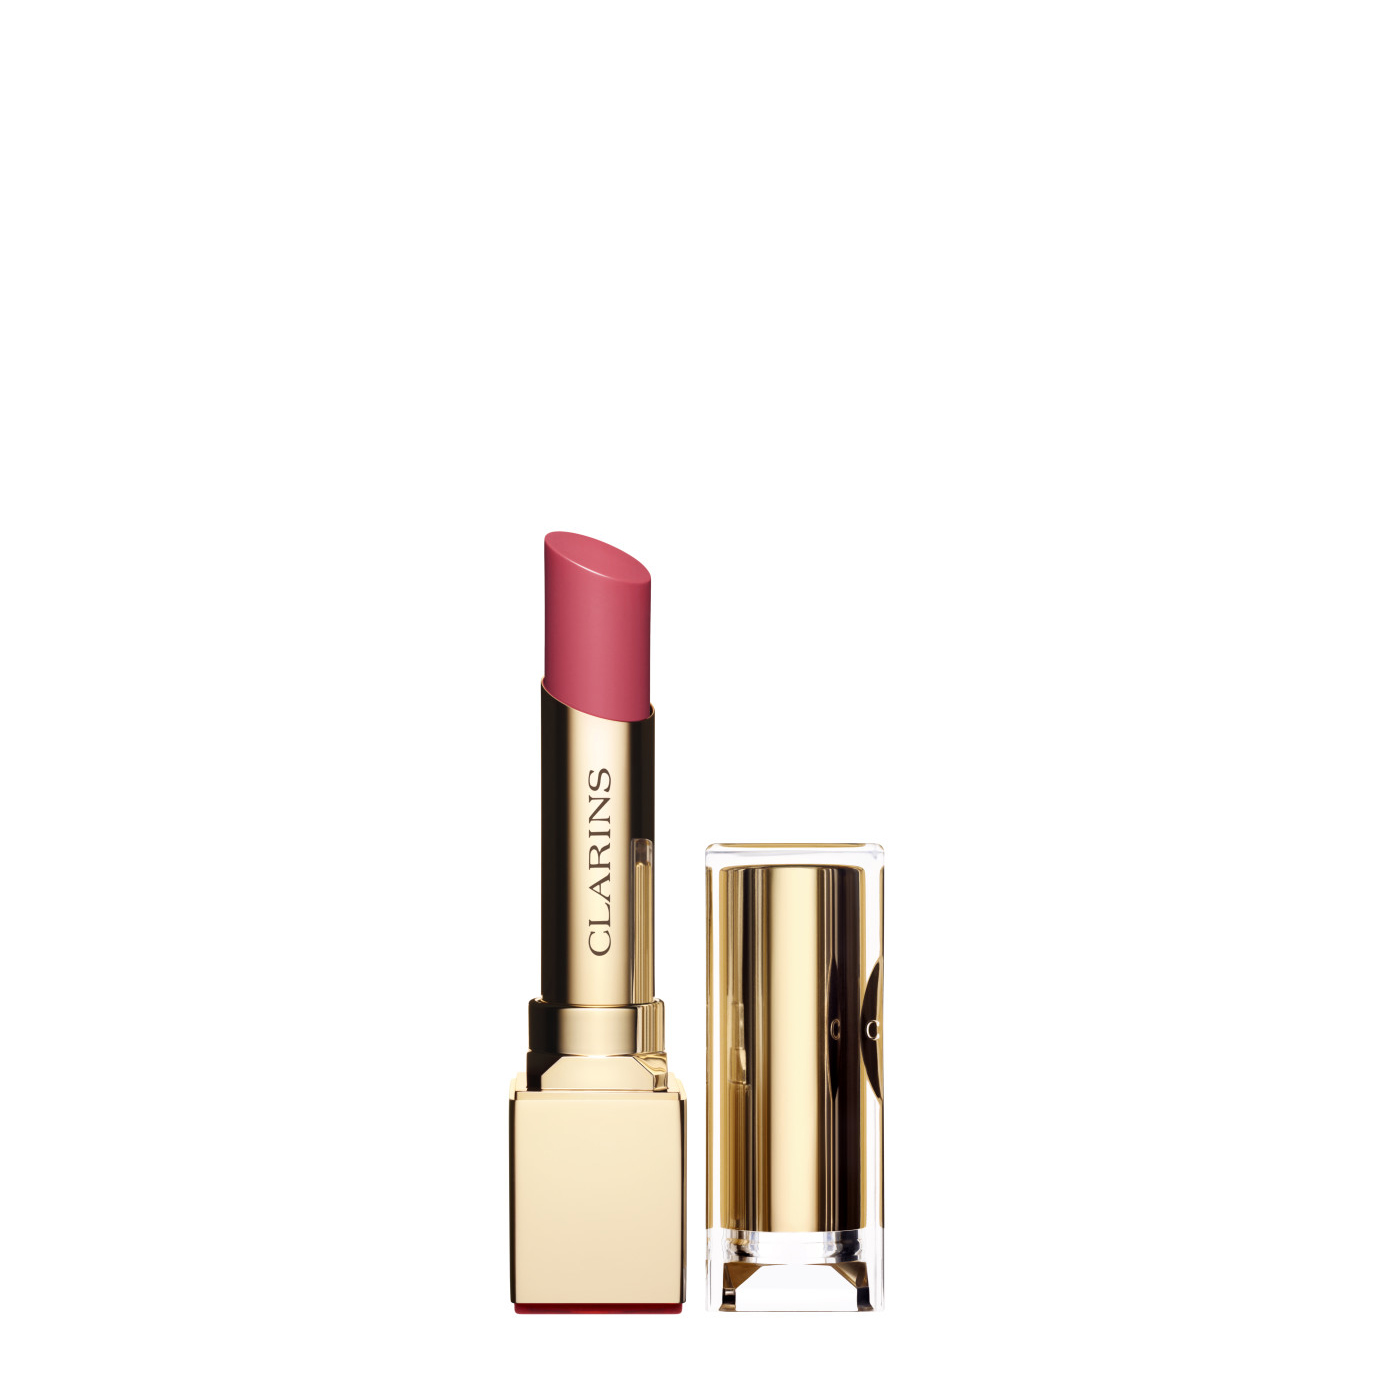 CLARINS ROUGE ECLAT 25 PINK BLOSSOM 3 GR @